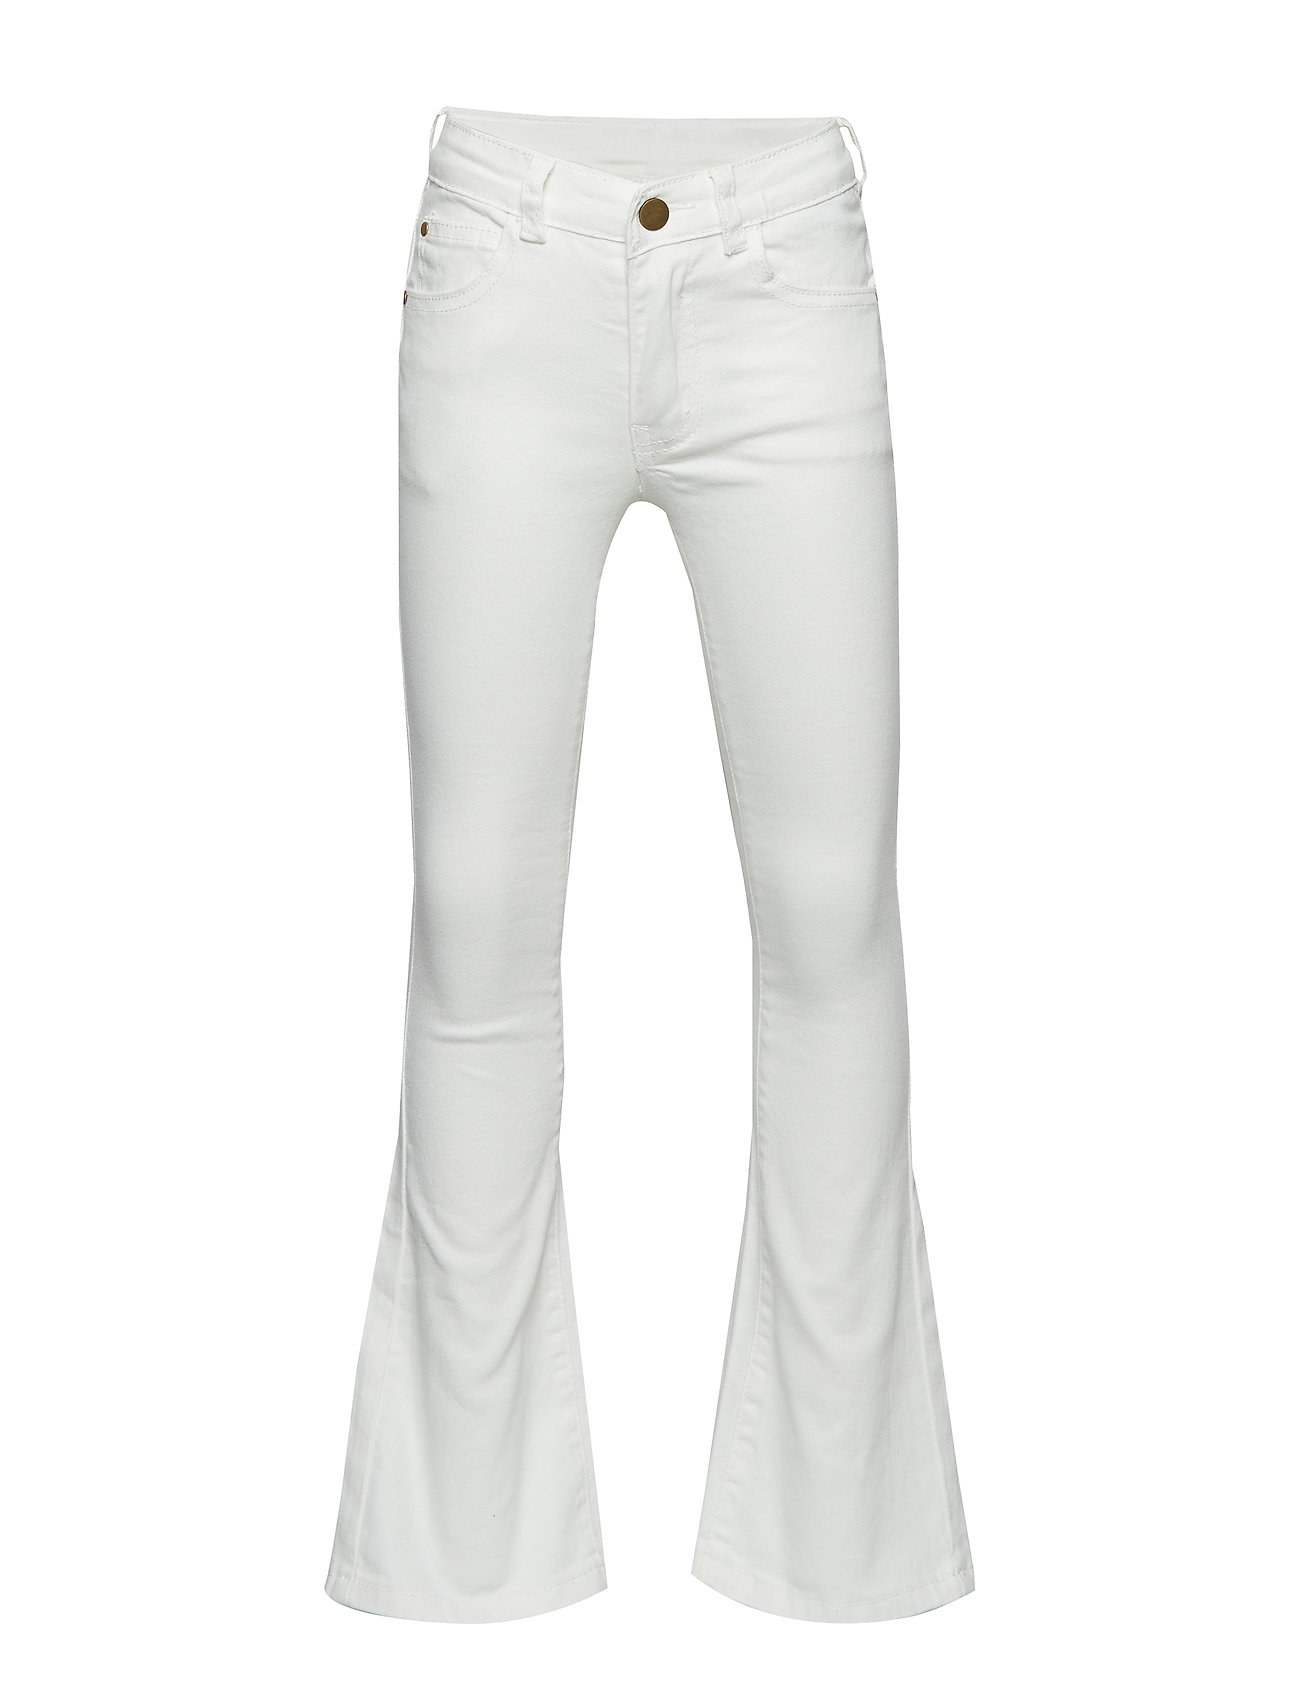 The New THE NEW FLARED JEANS - BRIGHT WHITE